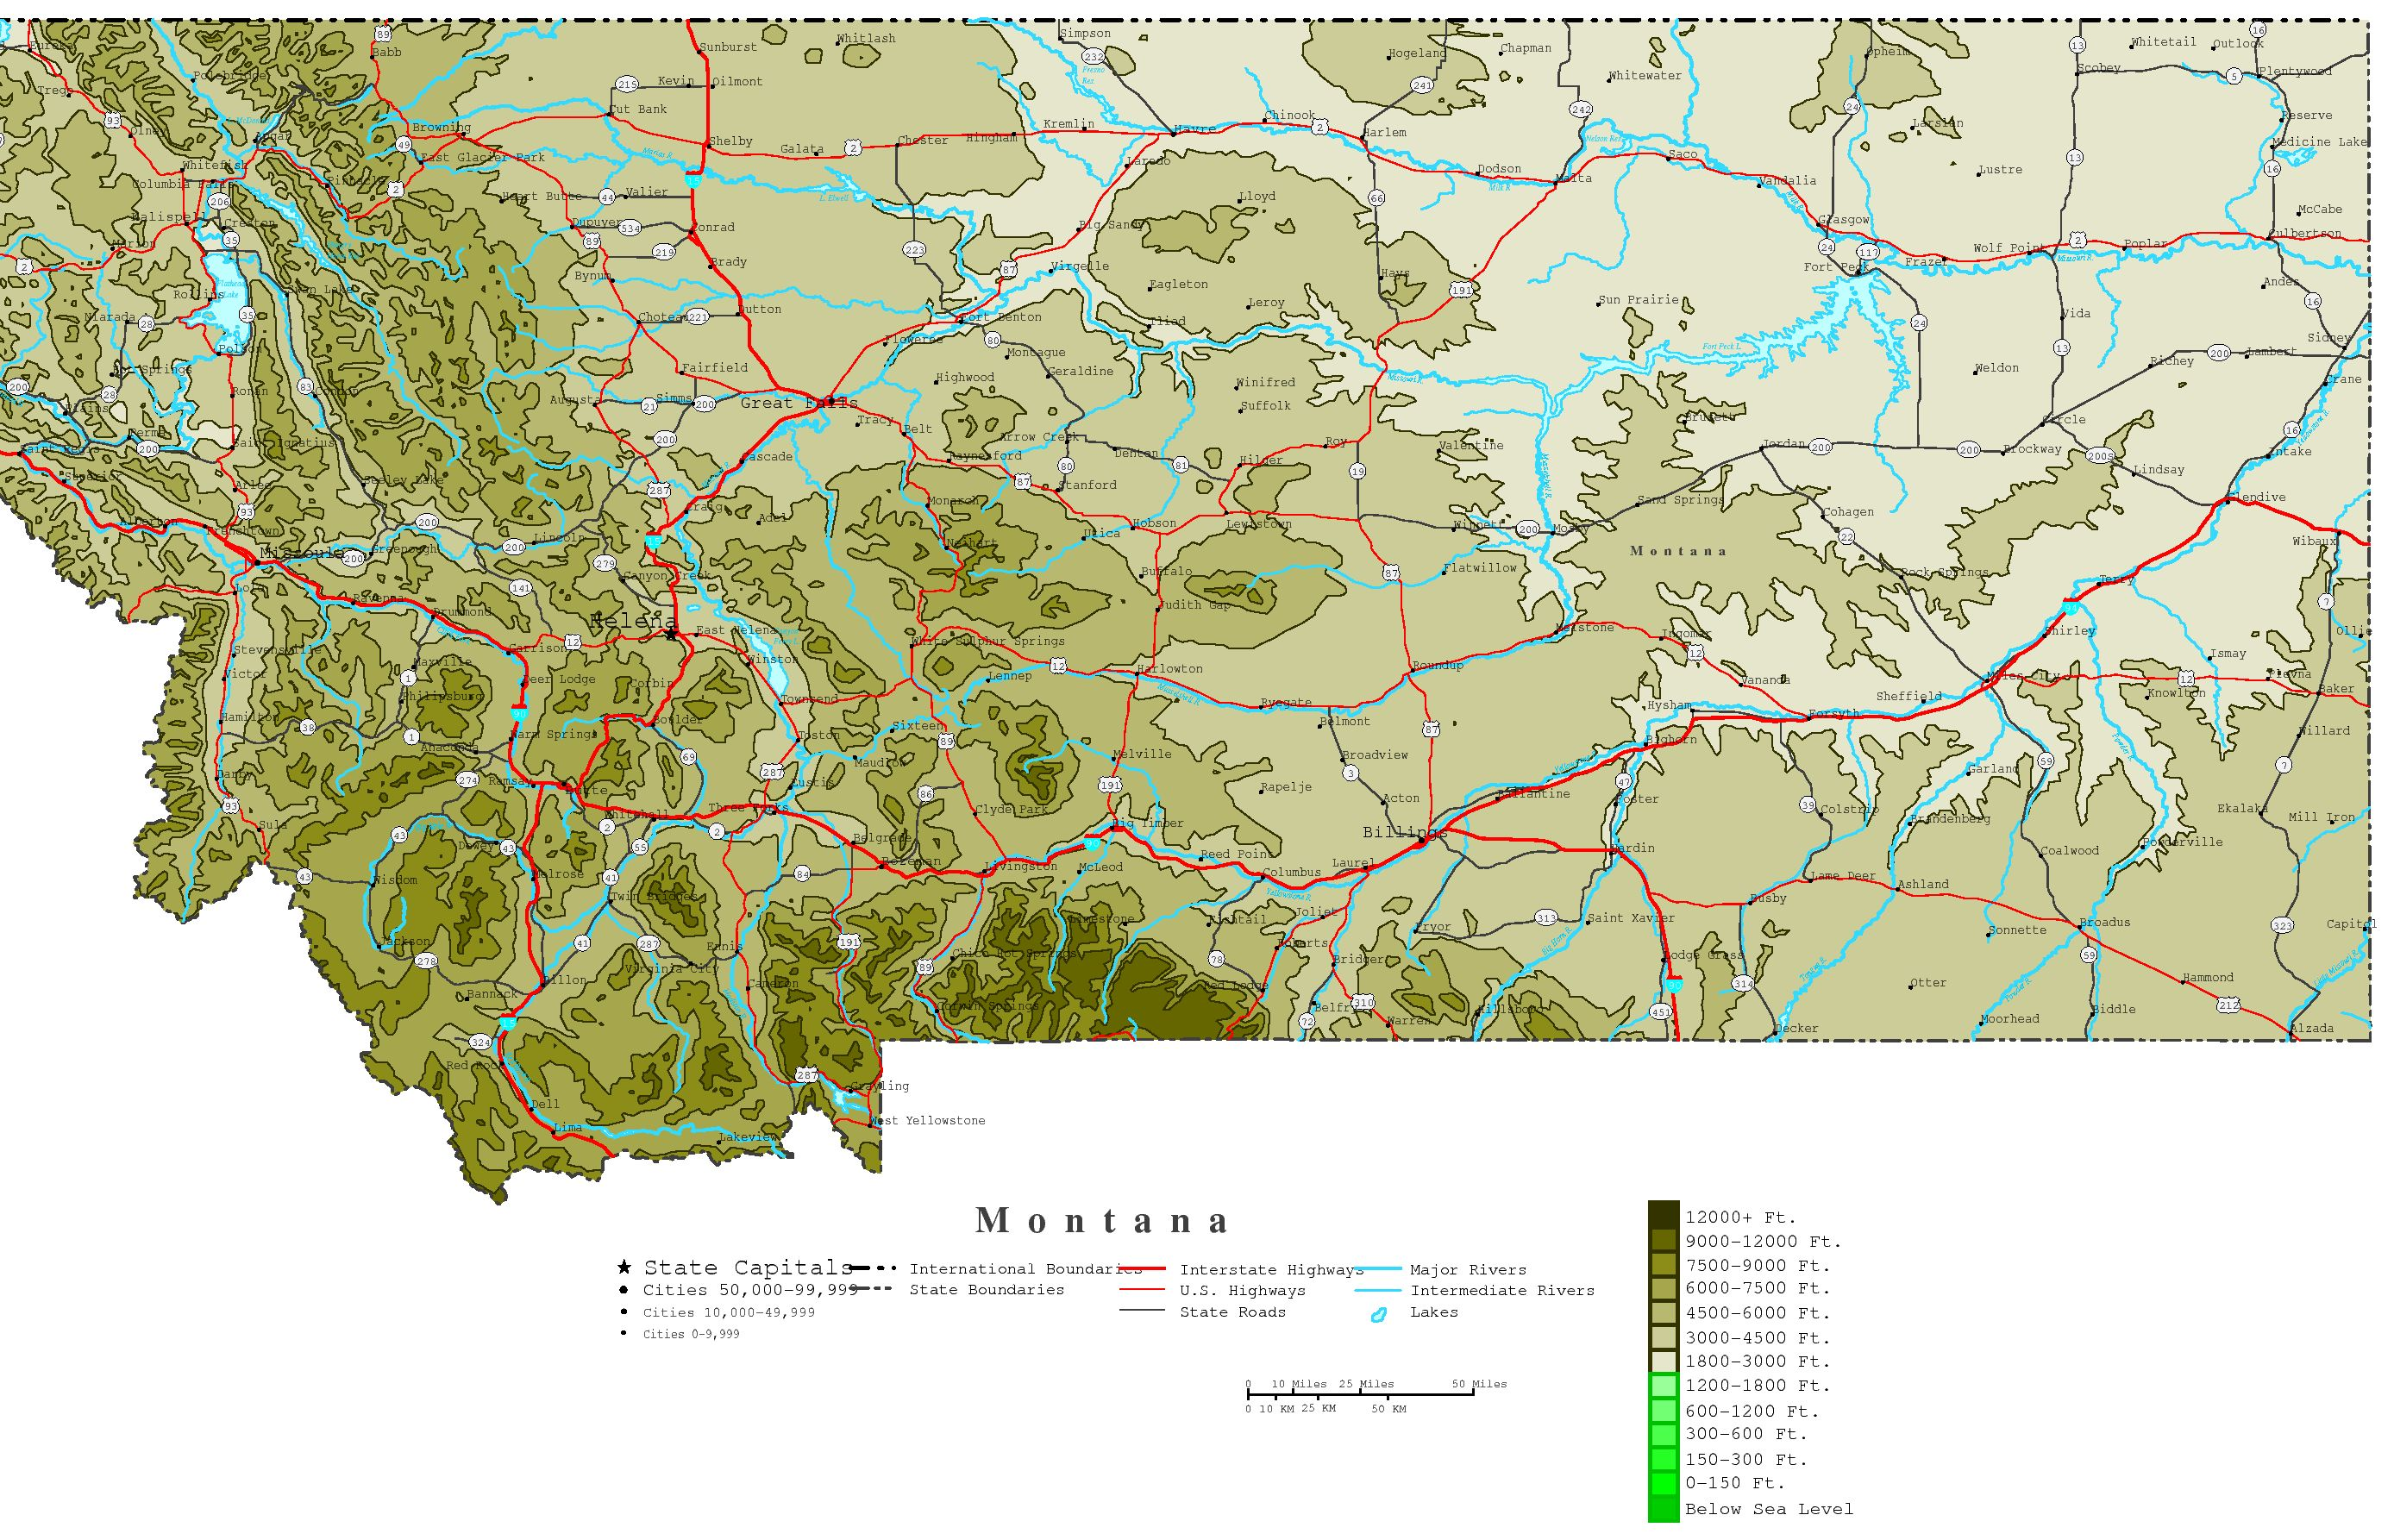 Montana Elevation Map - Montana on the us map